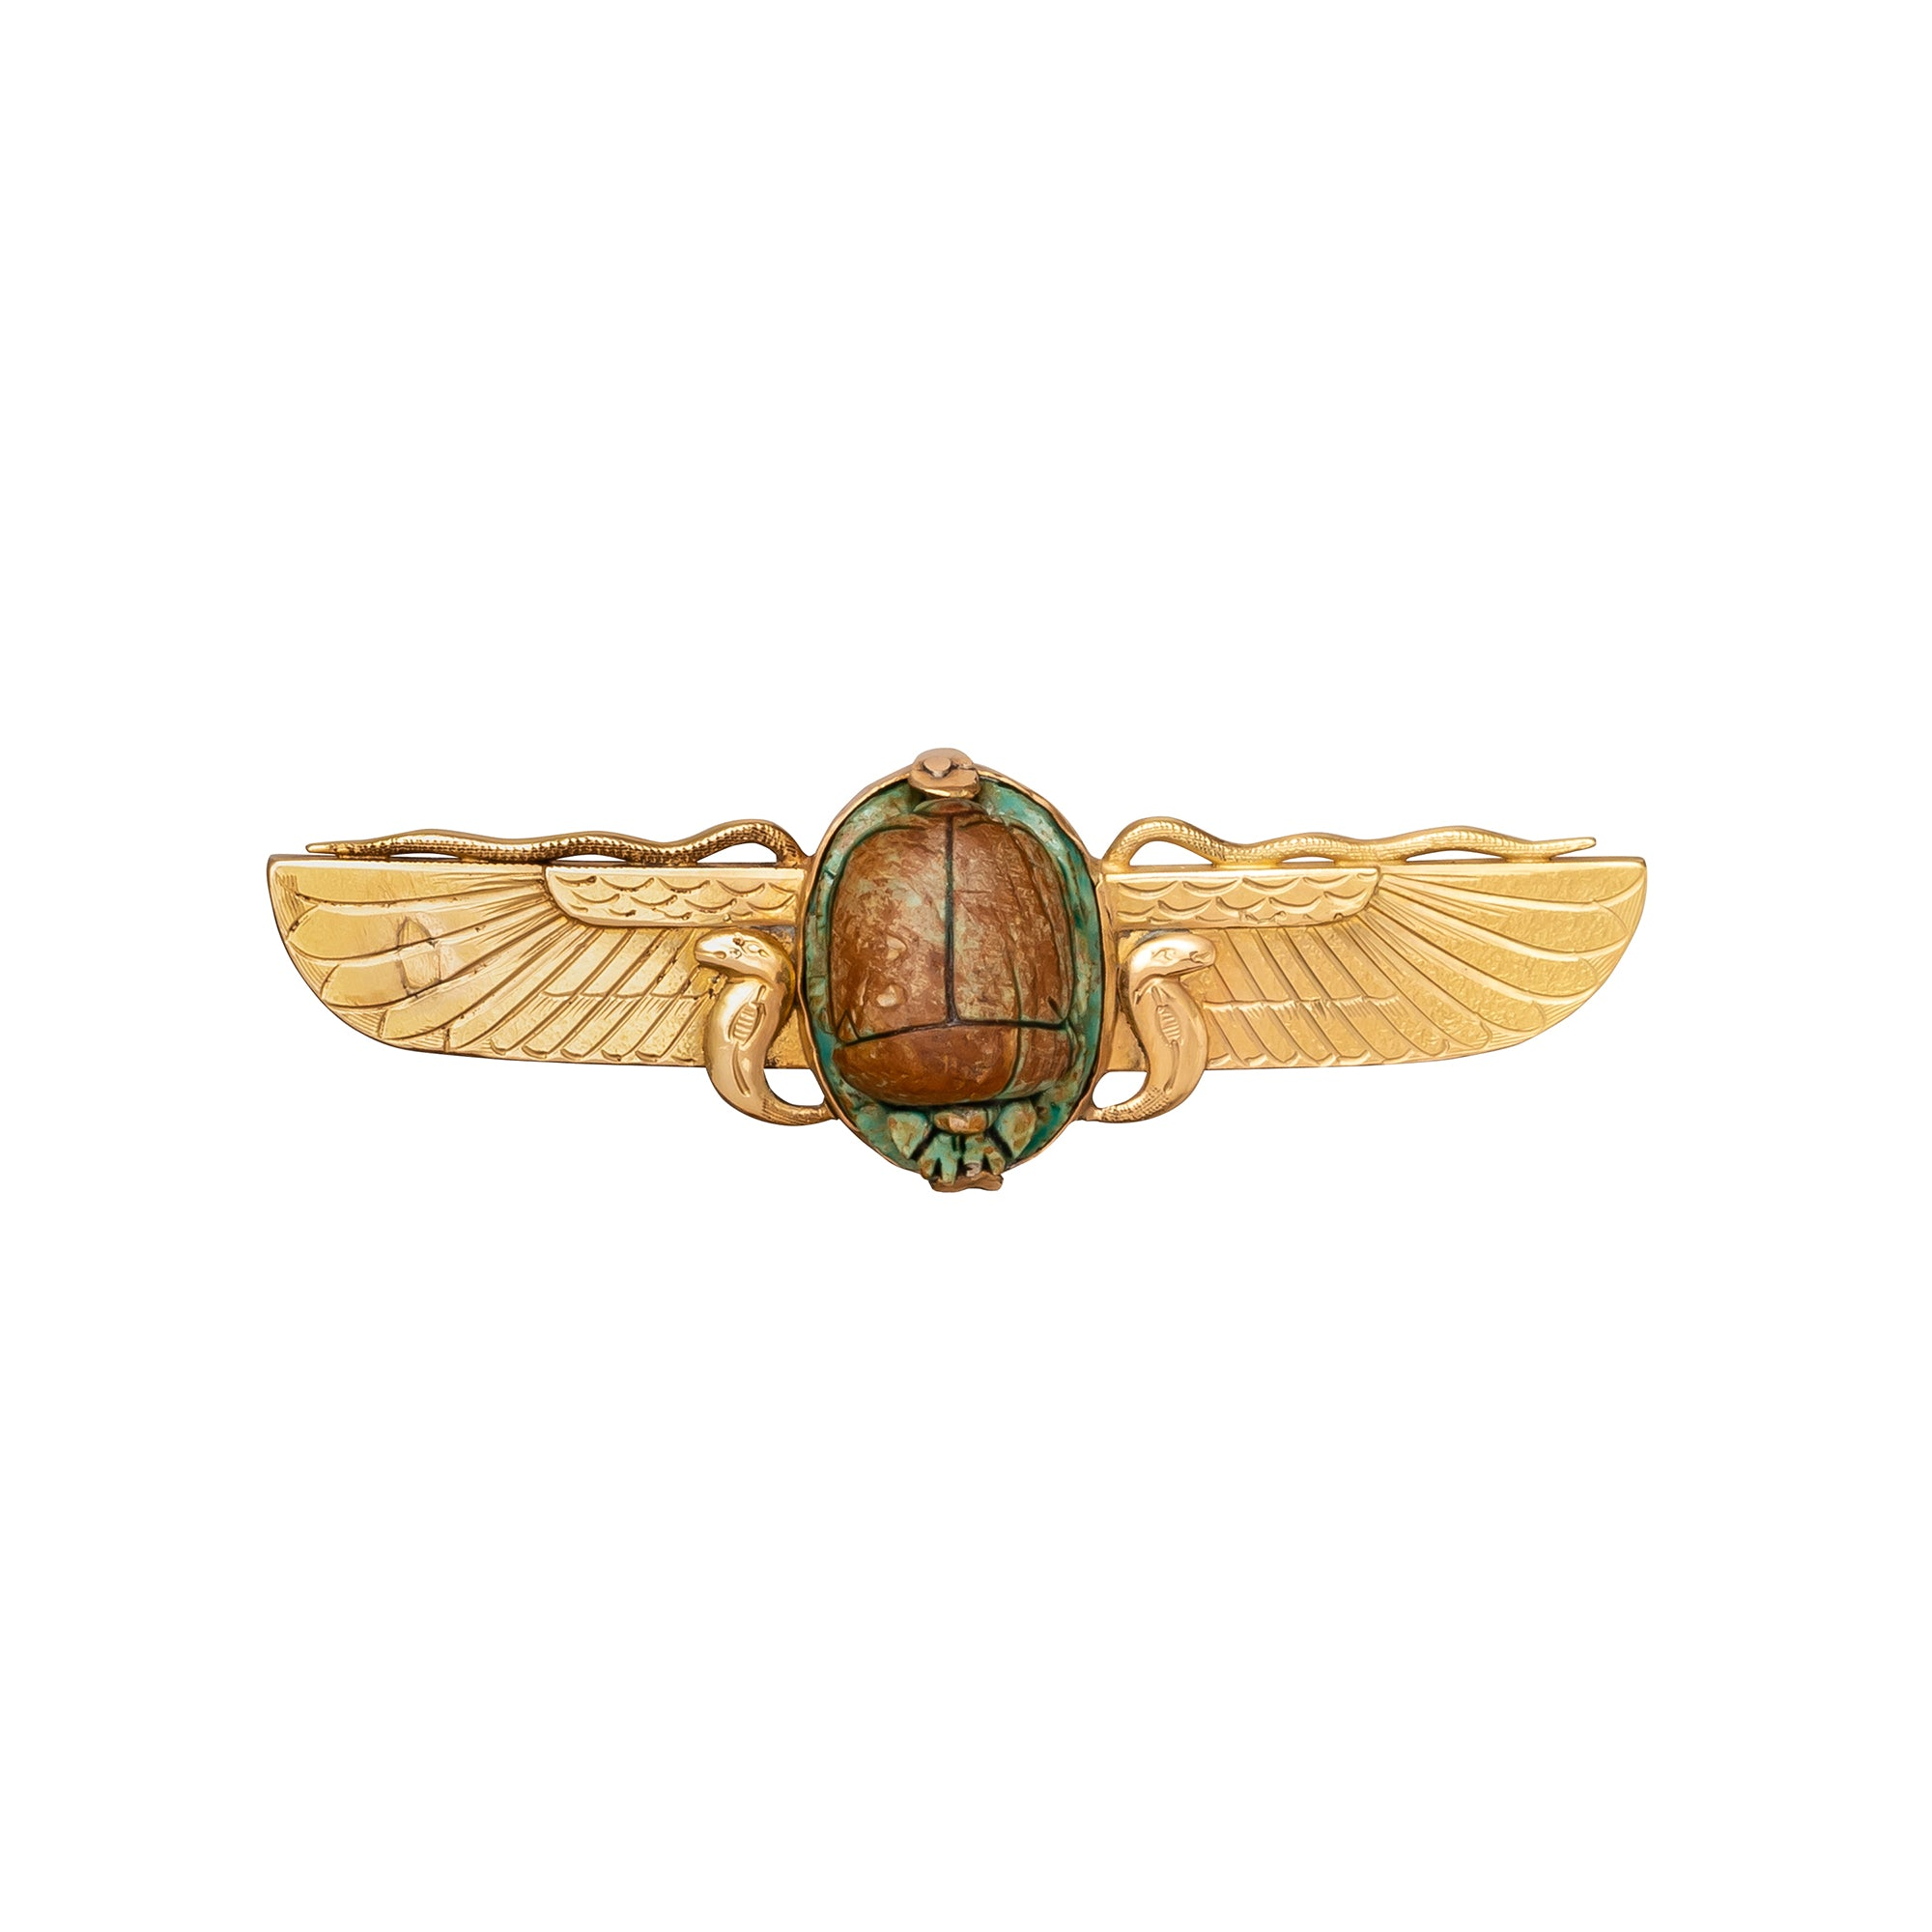 Winged Scarab Brooch - Antique & Vintage Jewelry - Charms & Pendants | Broken English Jewelry